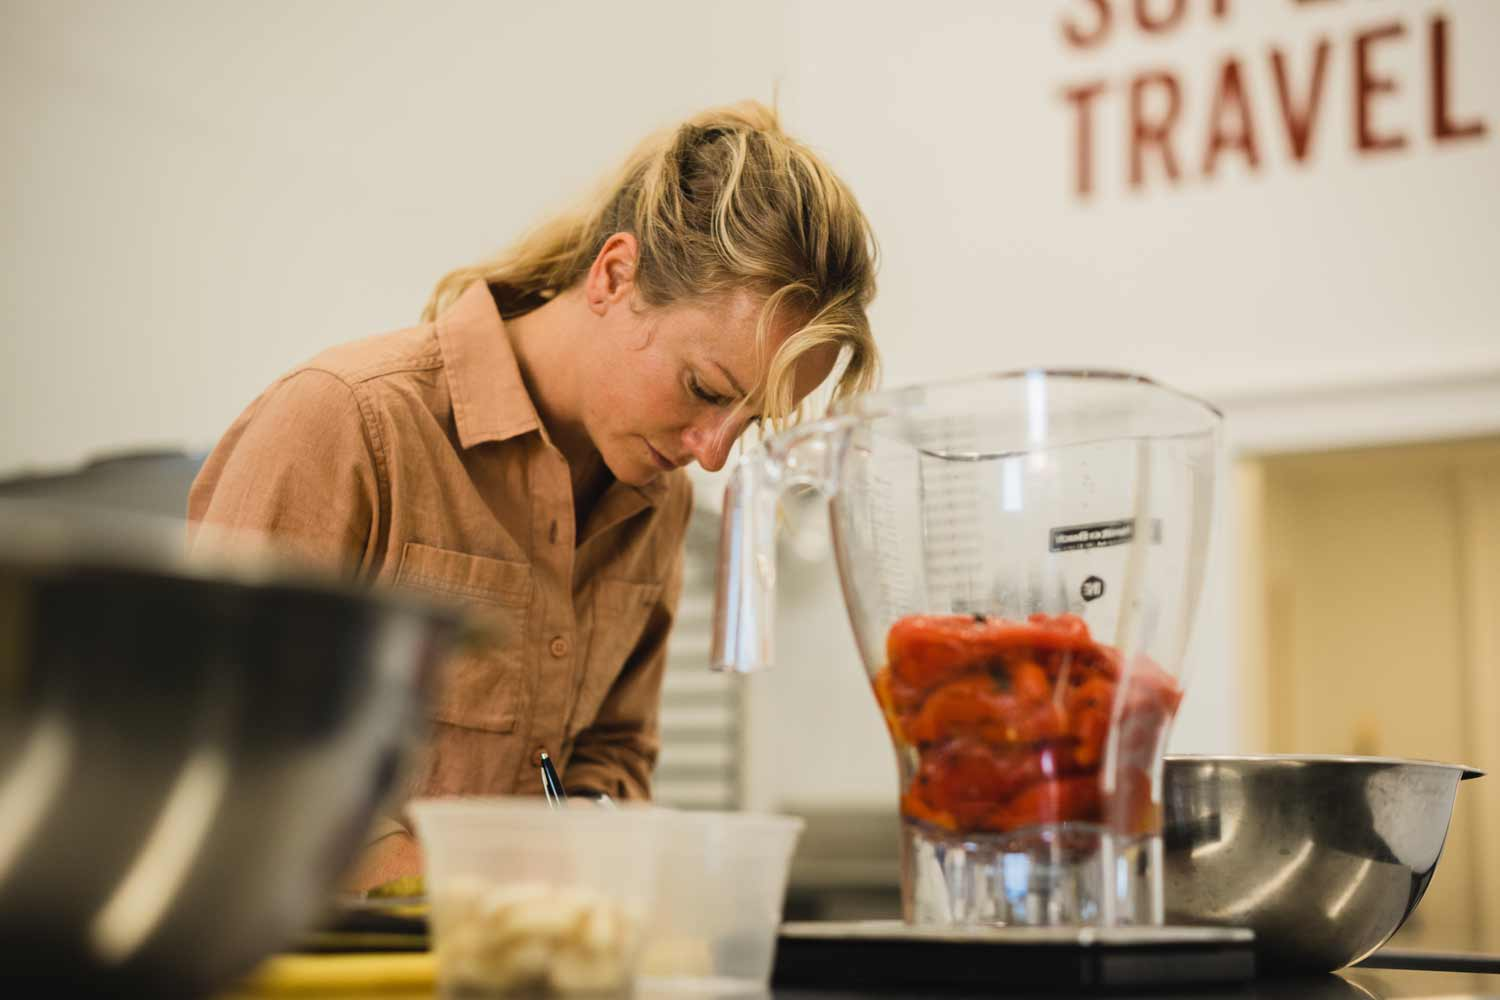 Shannon in kitchen doing product testing, blending roasted red peppers